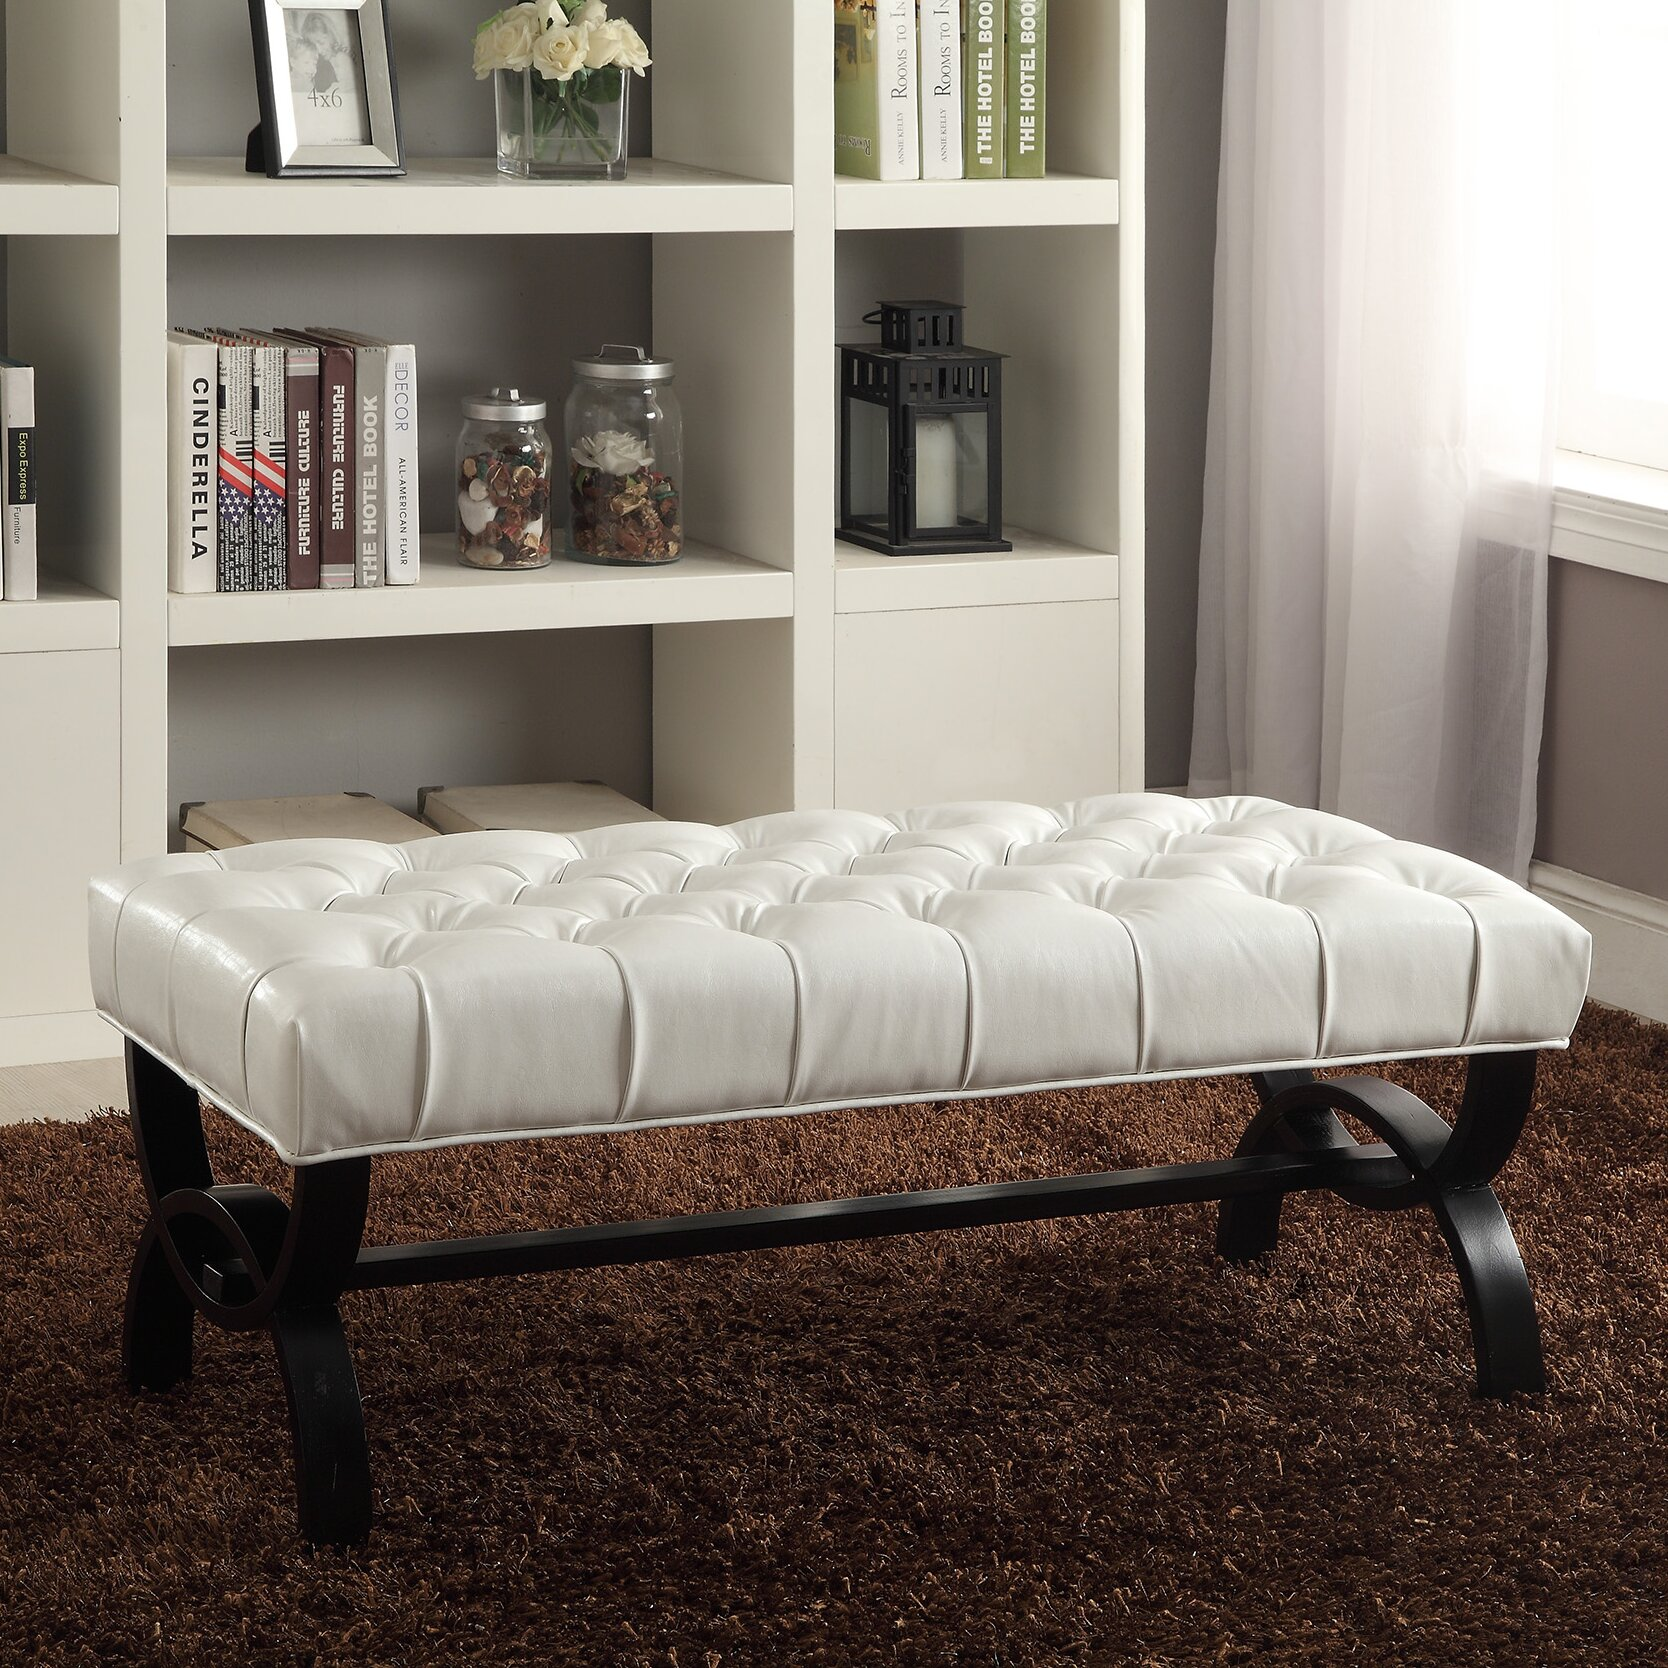 Wholesale Interiors Baxton Studio Upholstered Bedroom Bench Reviews Wayfair